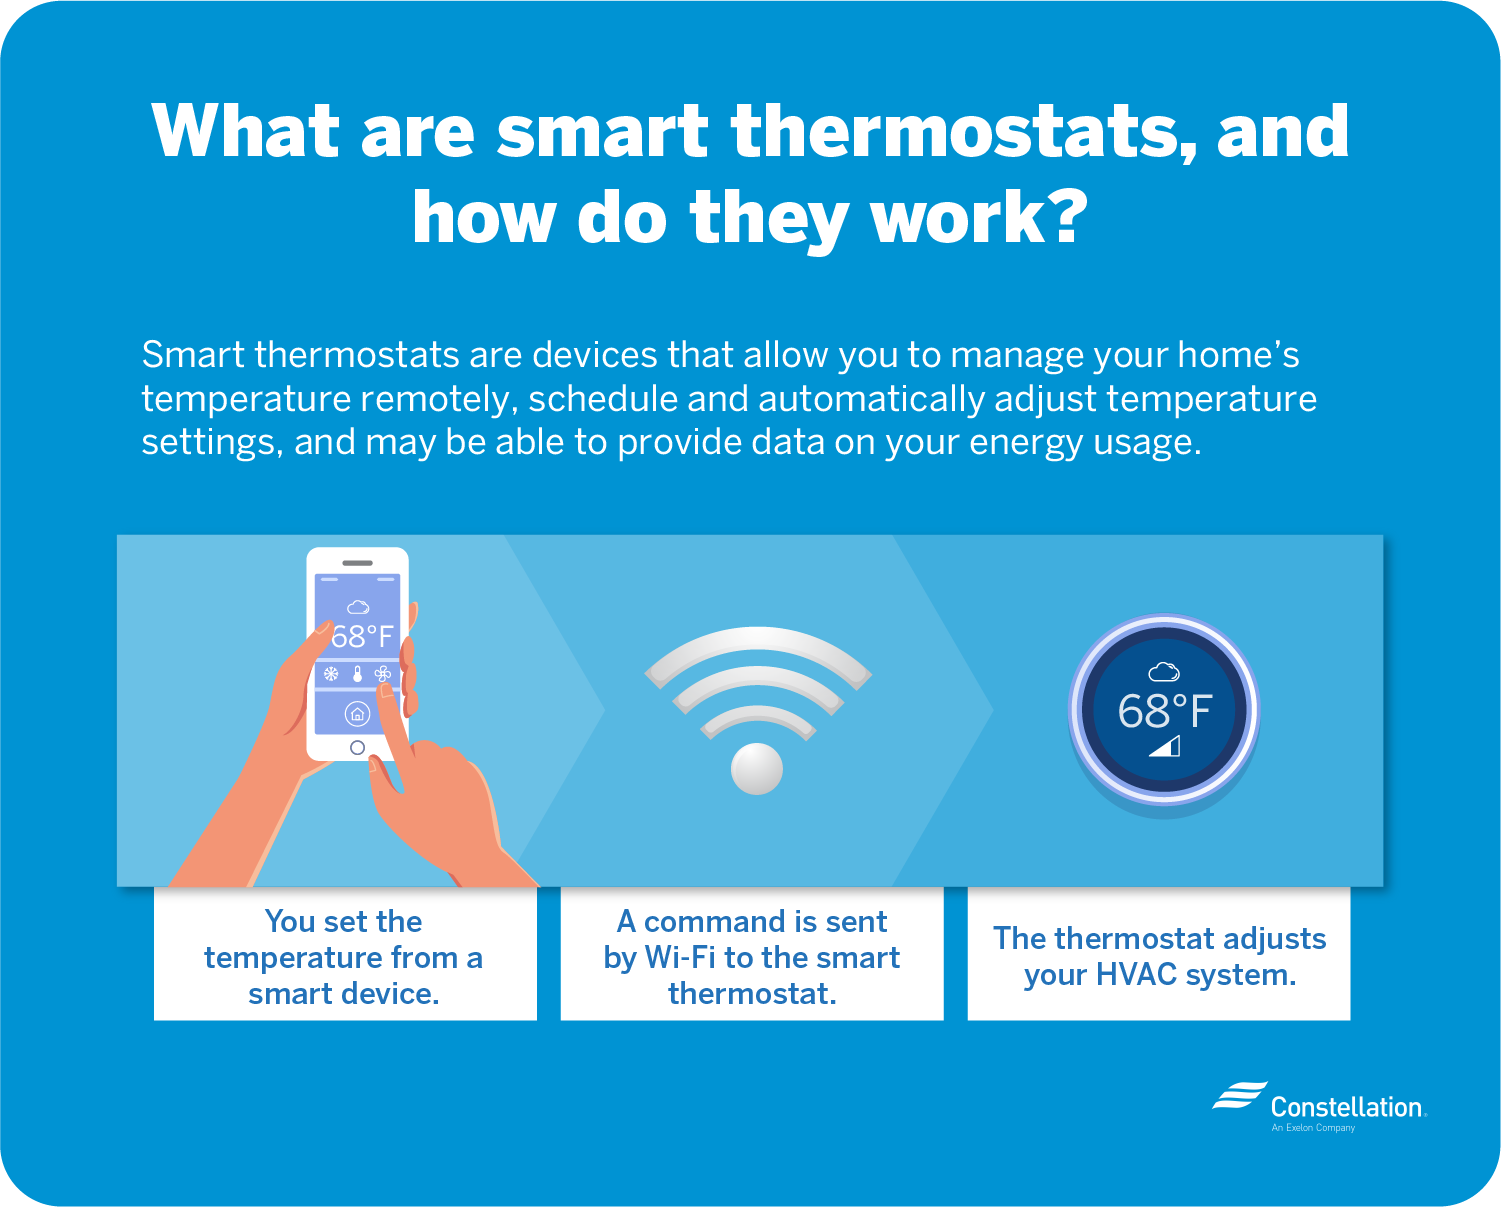 What are smart thermostats and how do they work?